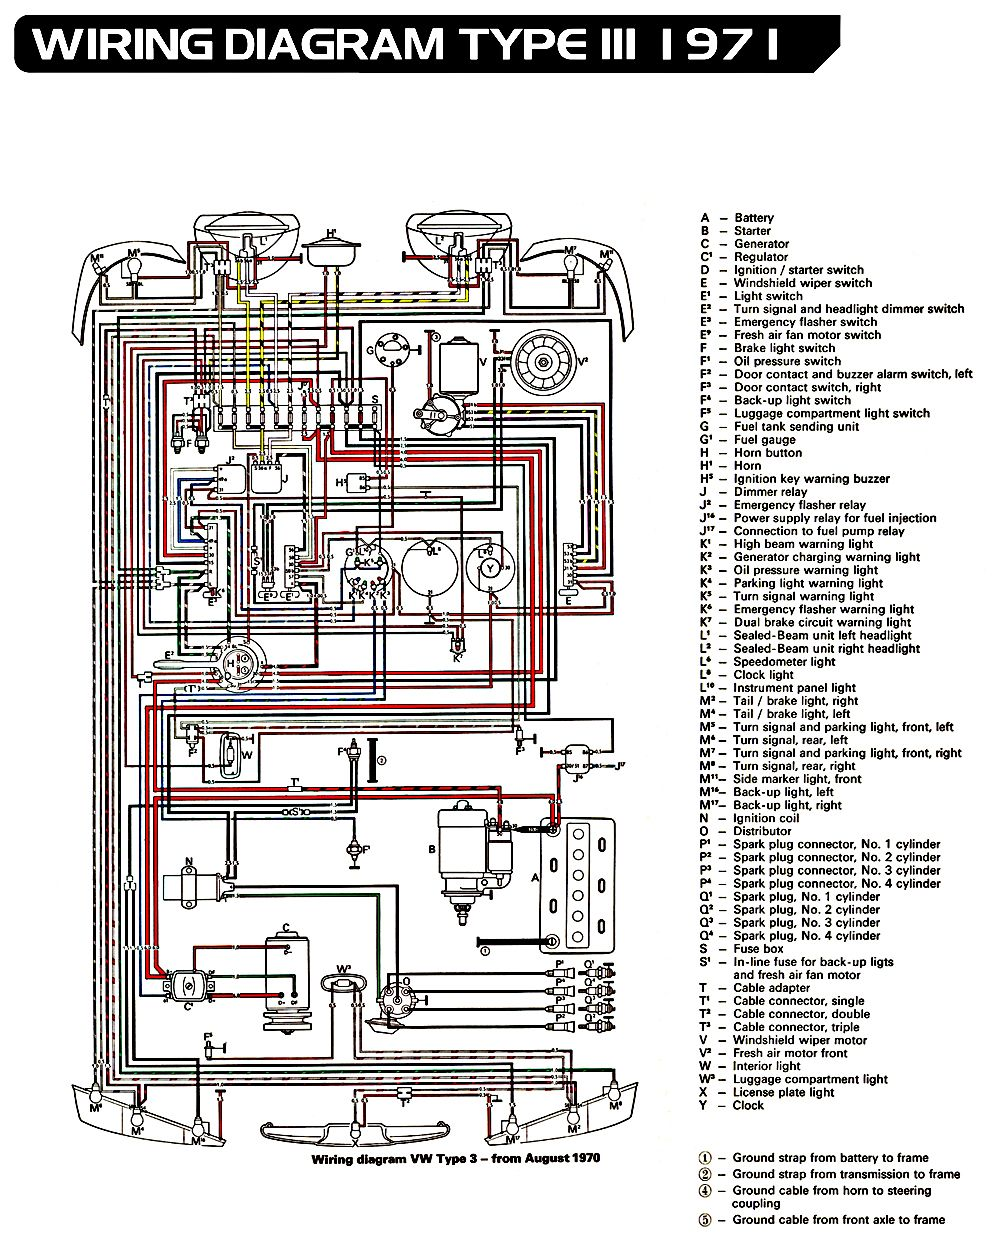 1971 type 3 vw wiring diagram so simple compared to a modern ecu rh pinterest com  vw golf mk3 ecu wiring diagram